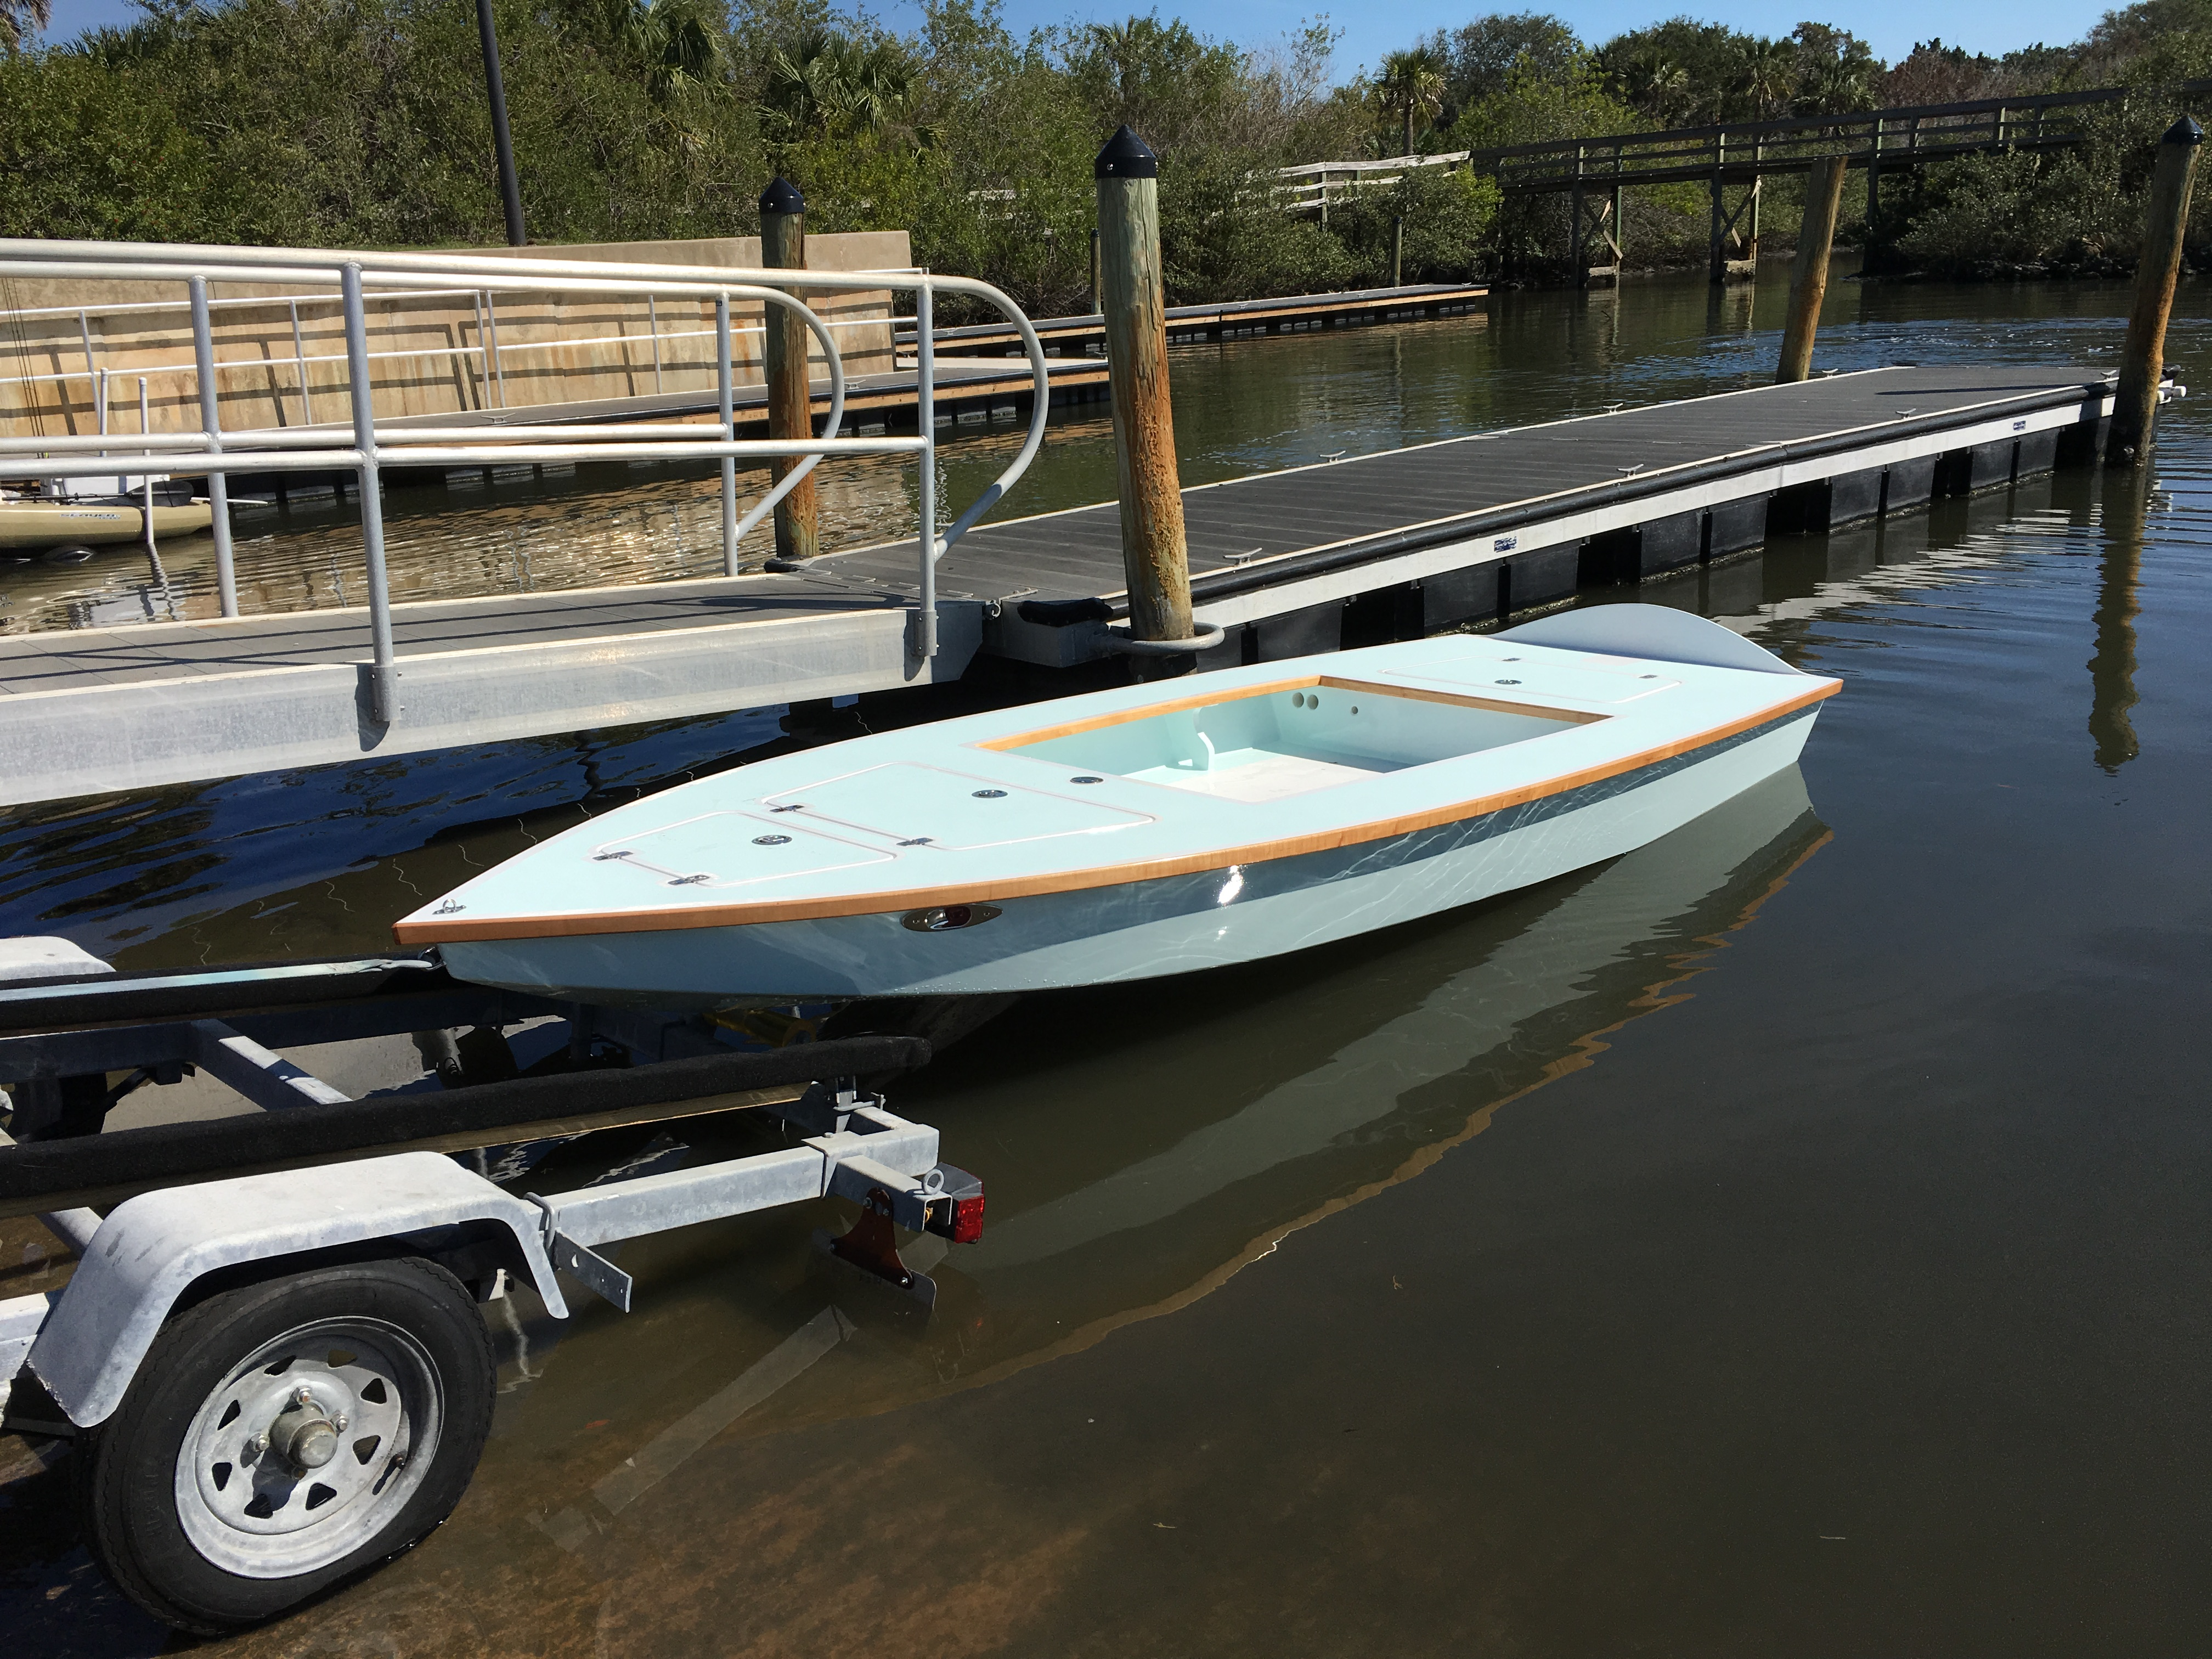 Opinions on the Bateau FX 20 | Microskiff - Dedicated To The Smallest Of Skiffs